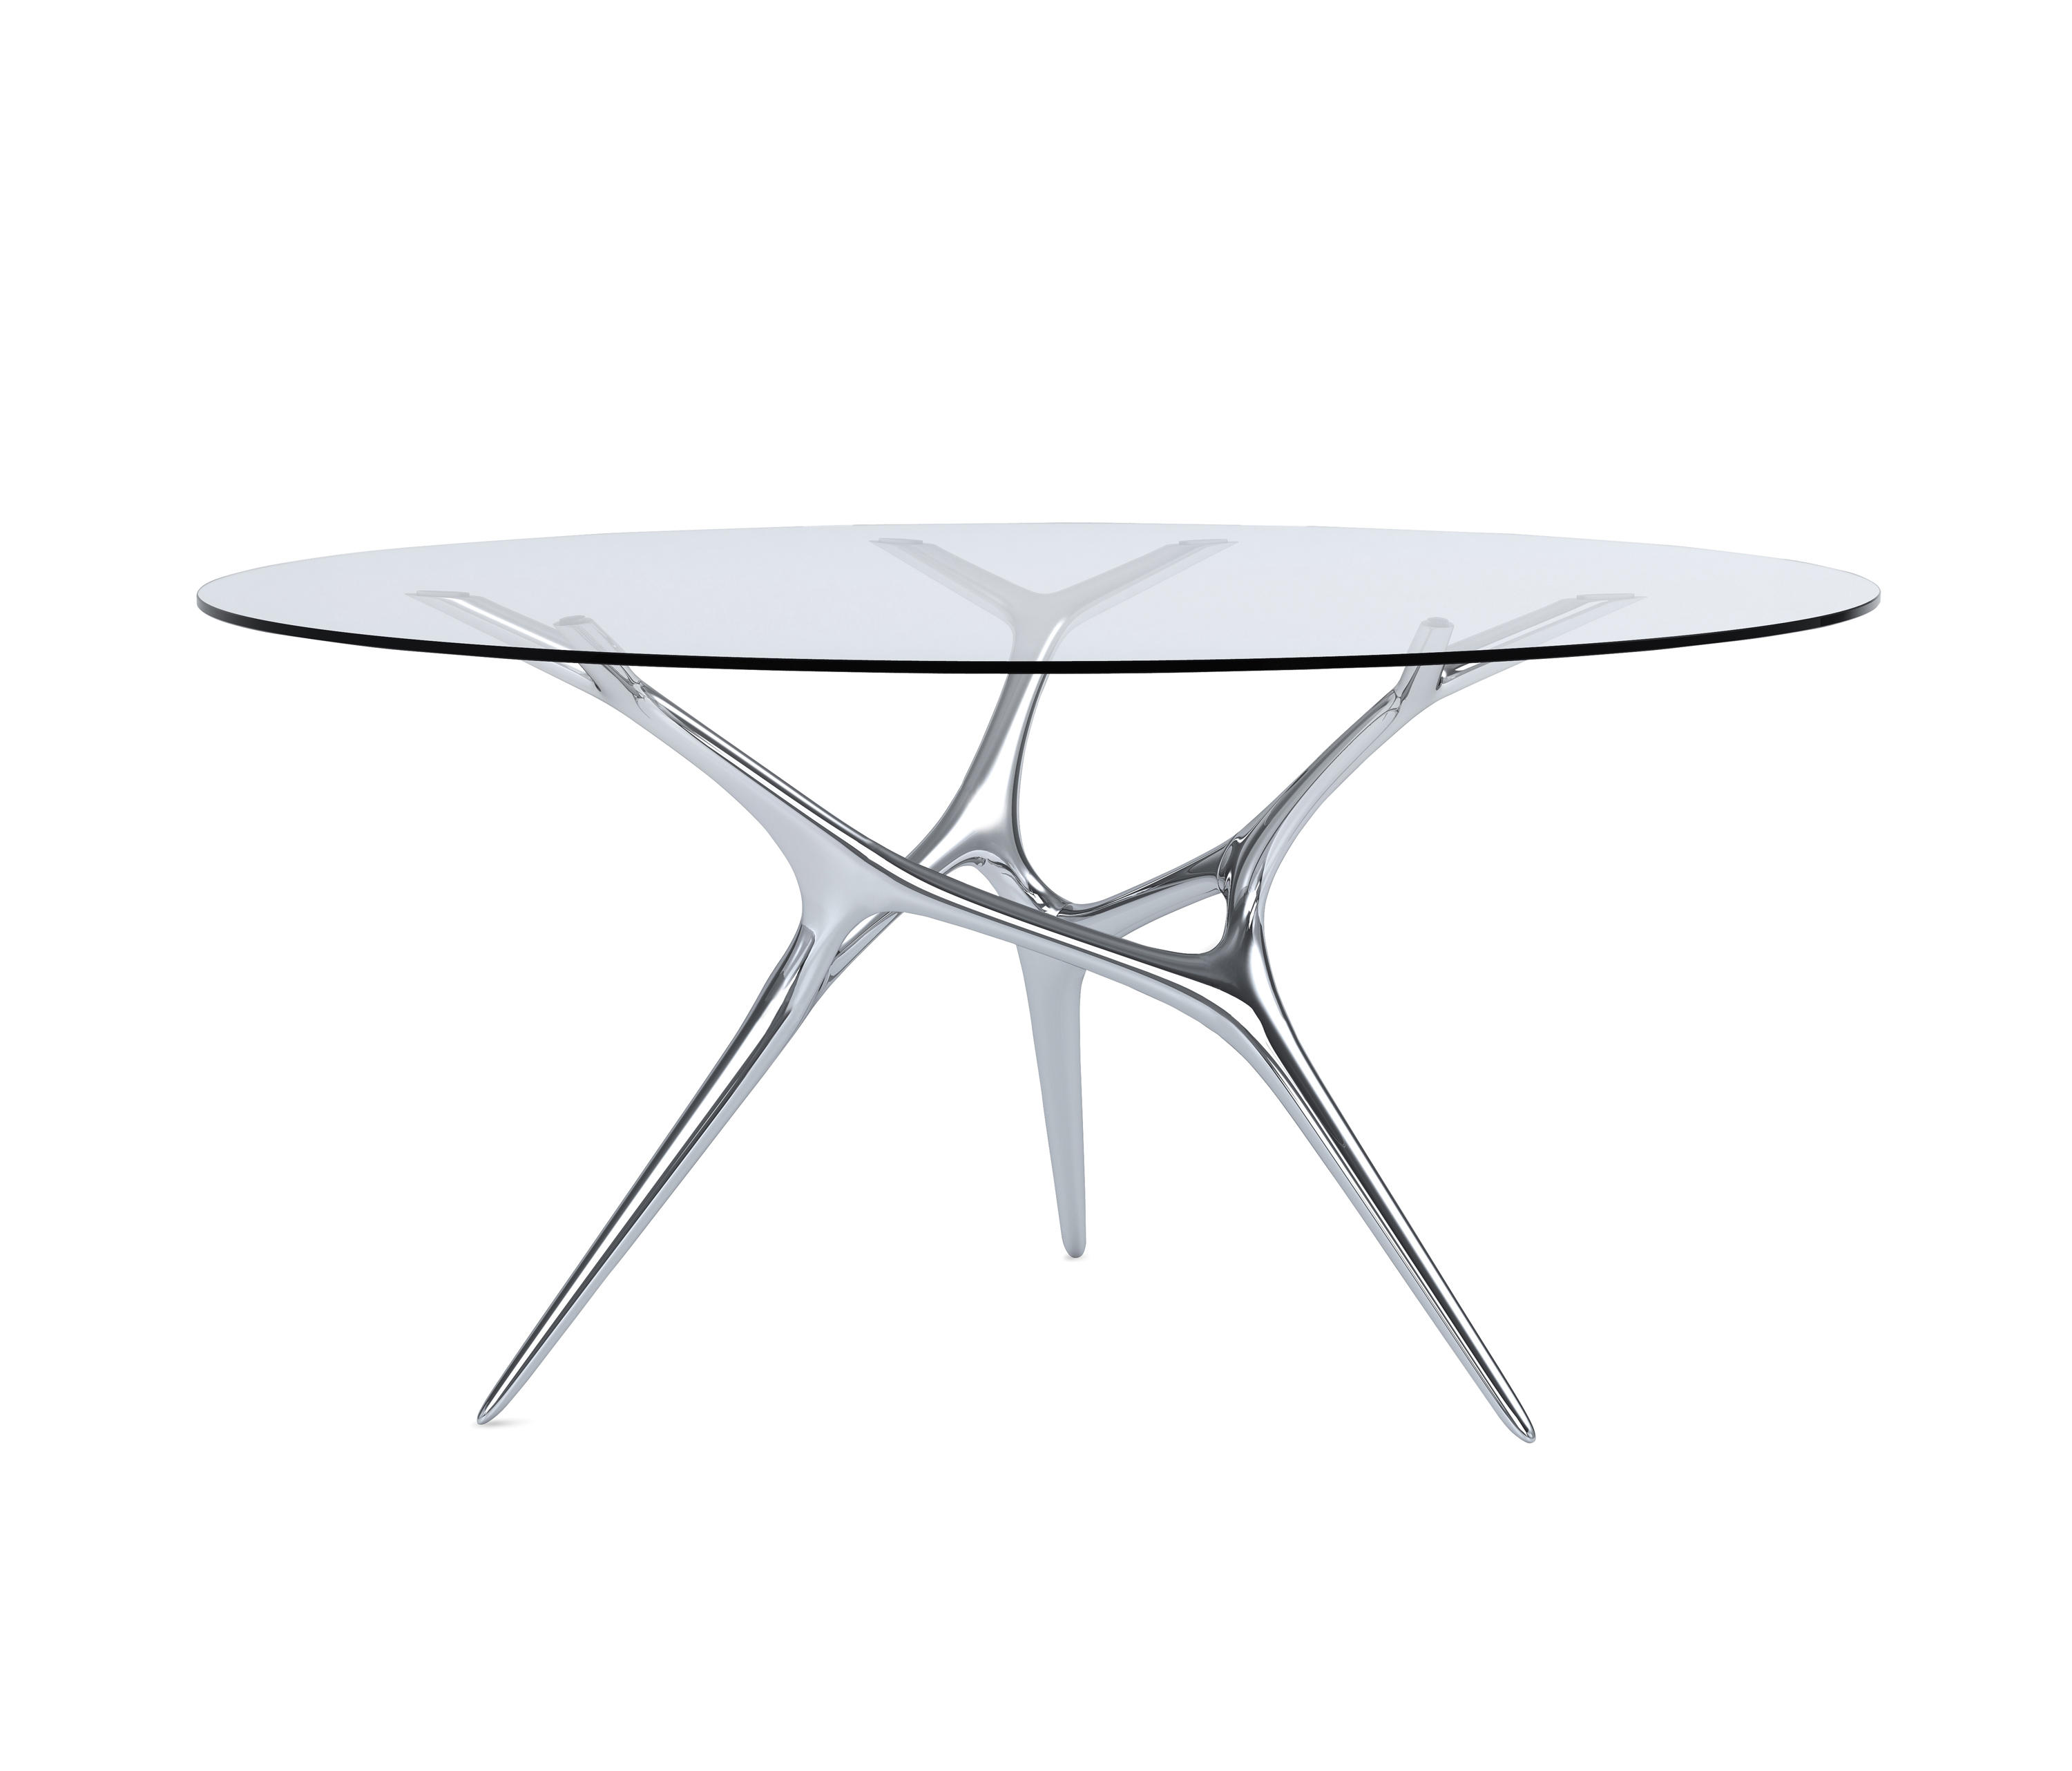 E Volved Table By FueraDentro | Restaurant Tables